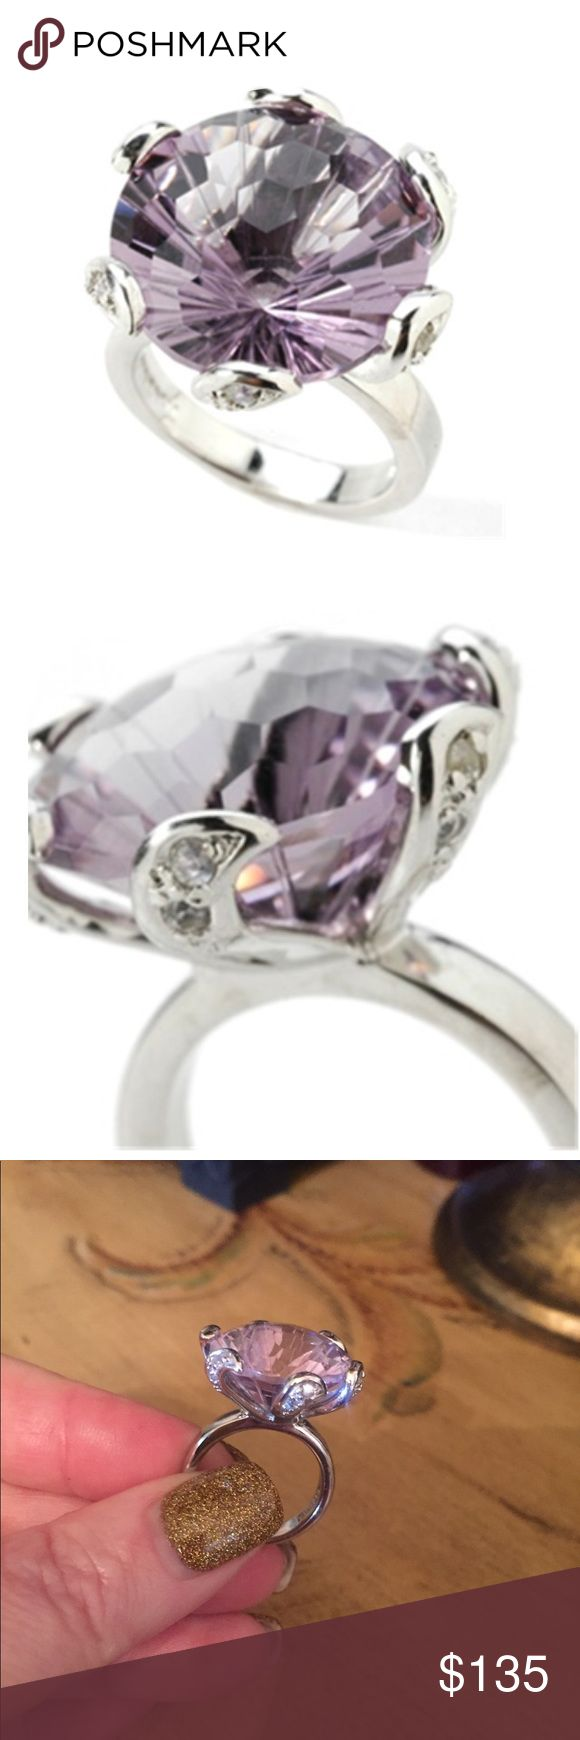 16 ct Rose de France amethyst Sterling silver ring Breathtaking beauty! 💜 features one round faceted cut rose-de-France amethyst. This is such a unique cut supreme Quality No comparison from what I've seen.  also has 12 round faceted cut zircons. zircon is known for its brilliance✨Zircon is a birthstone for December, along w turquoise & tanzanite. total amethyst weight is approx 16 ct 😱& the zircon weight is 0.36ct. The color is reminiscent of a lavender/lilac shade. works to lessen…